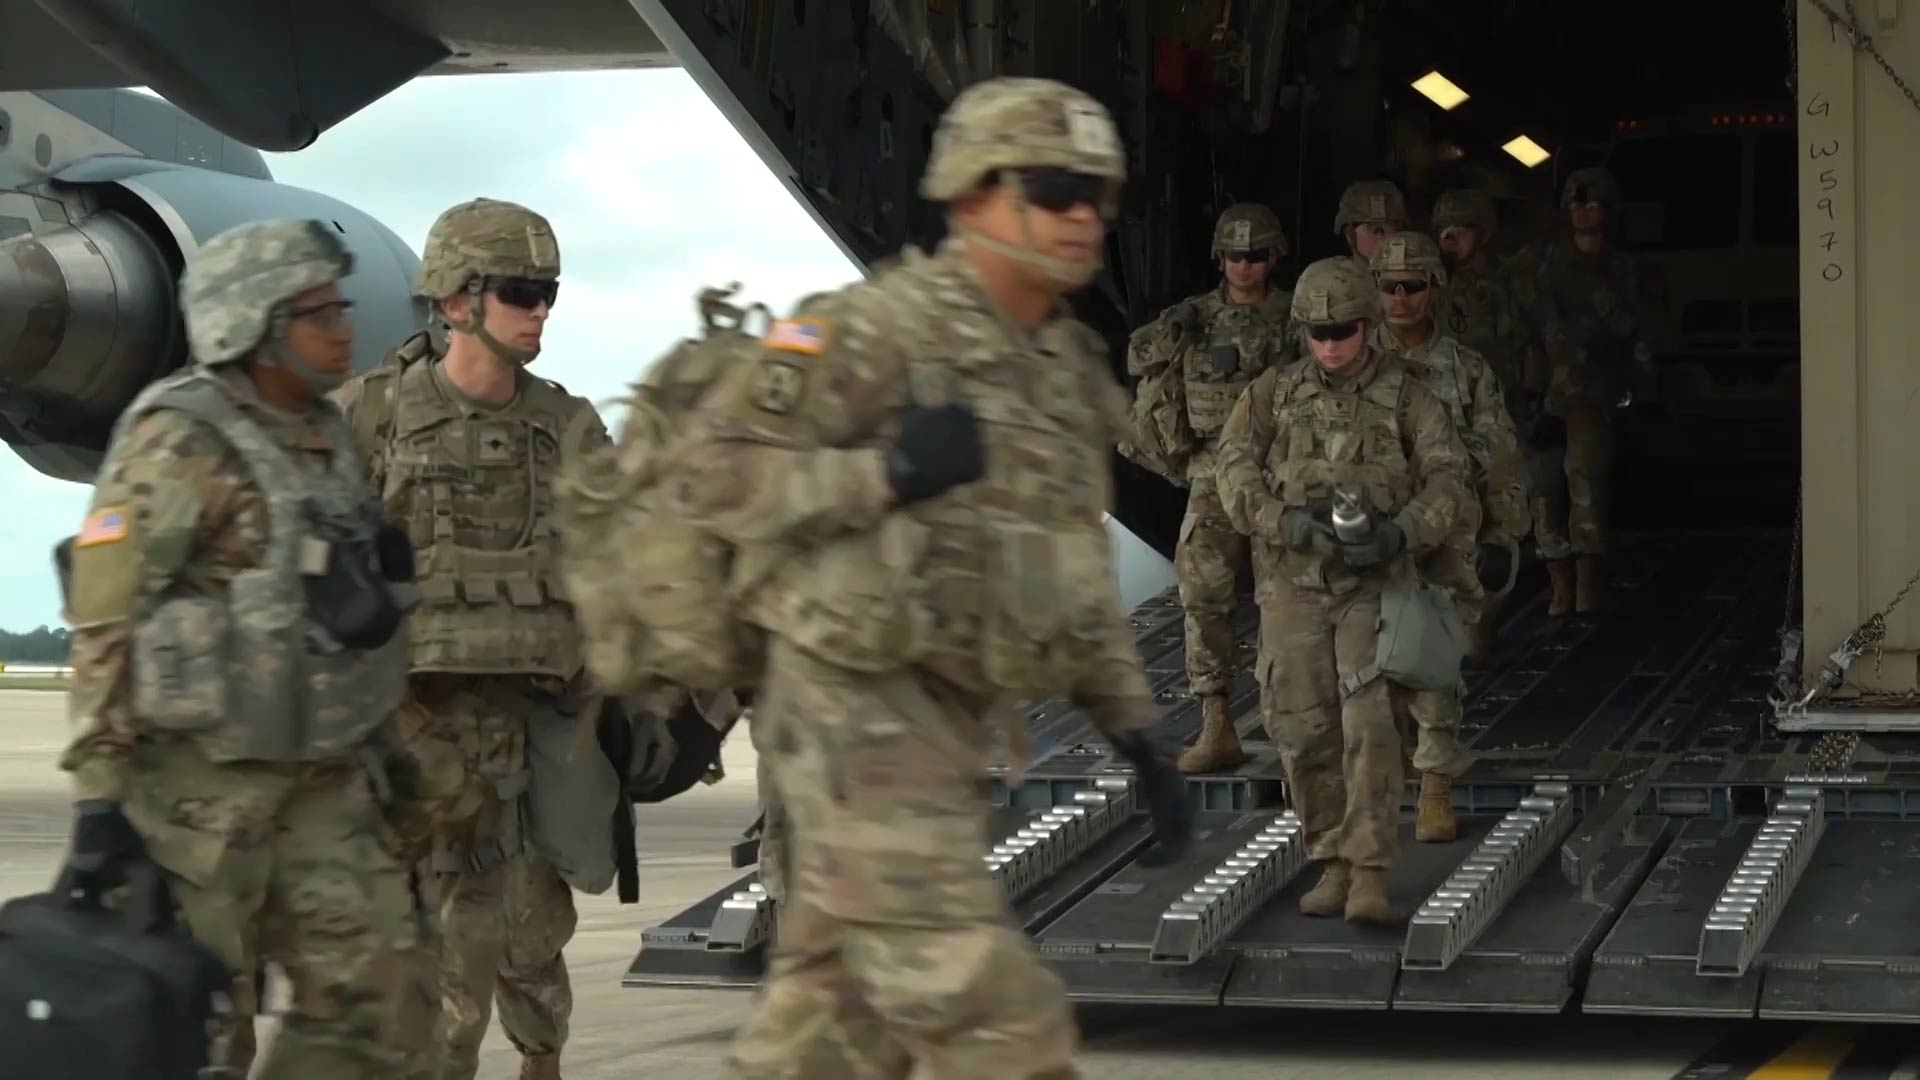 Soldiers arrive at Lackland Air Force Base in San Antonio on October 30, 2018 as part of Operation Faithful Patriot. The Trump Administration announced it will deploy more than 7,000 active duty troops to the southern border to assist federal agents.